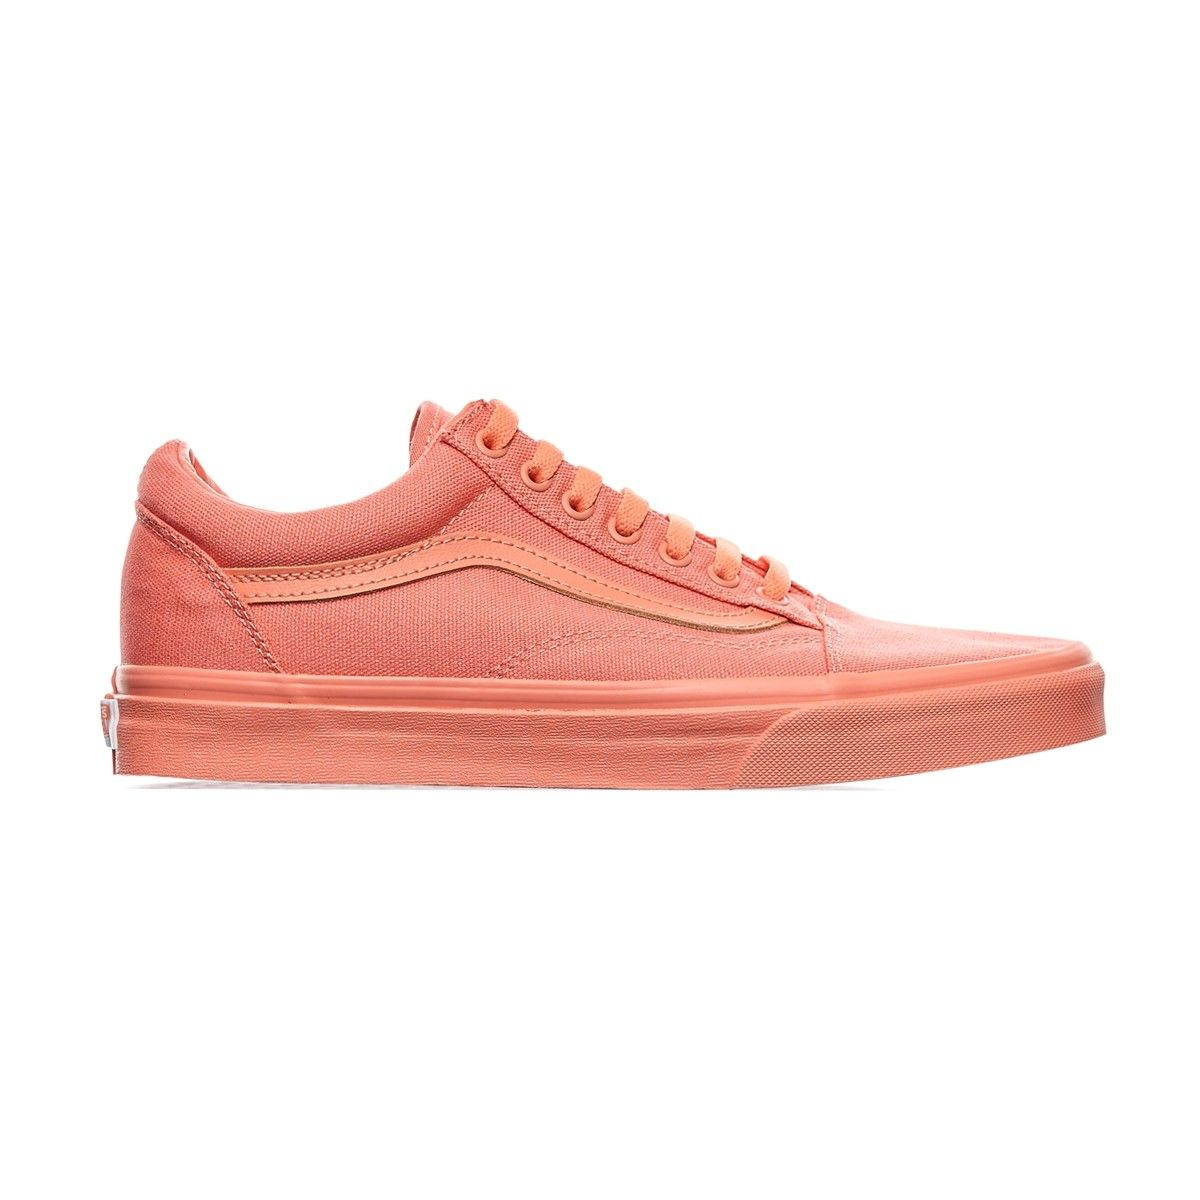 vans old skool sizing reddit 21bc2878a